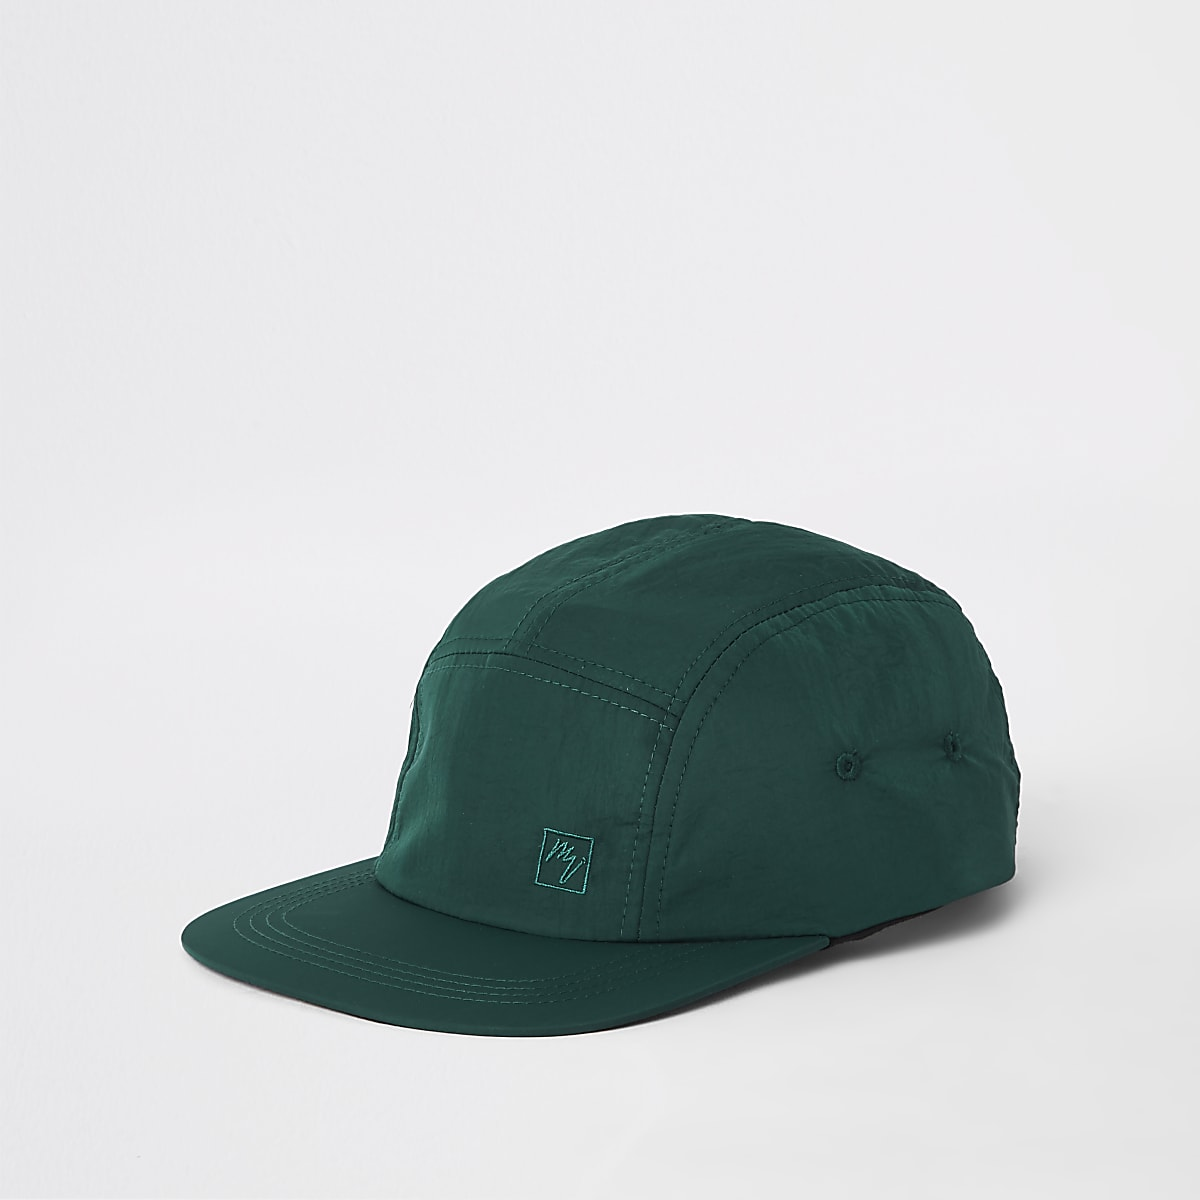 Green Maison Riviera five panel cap